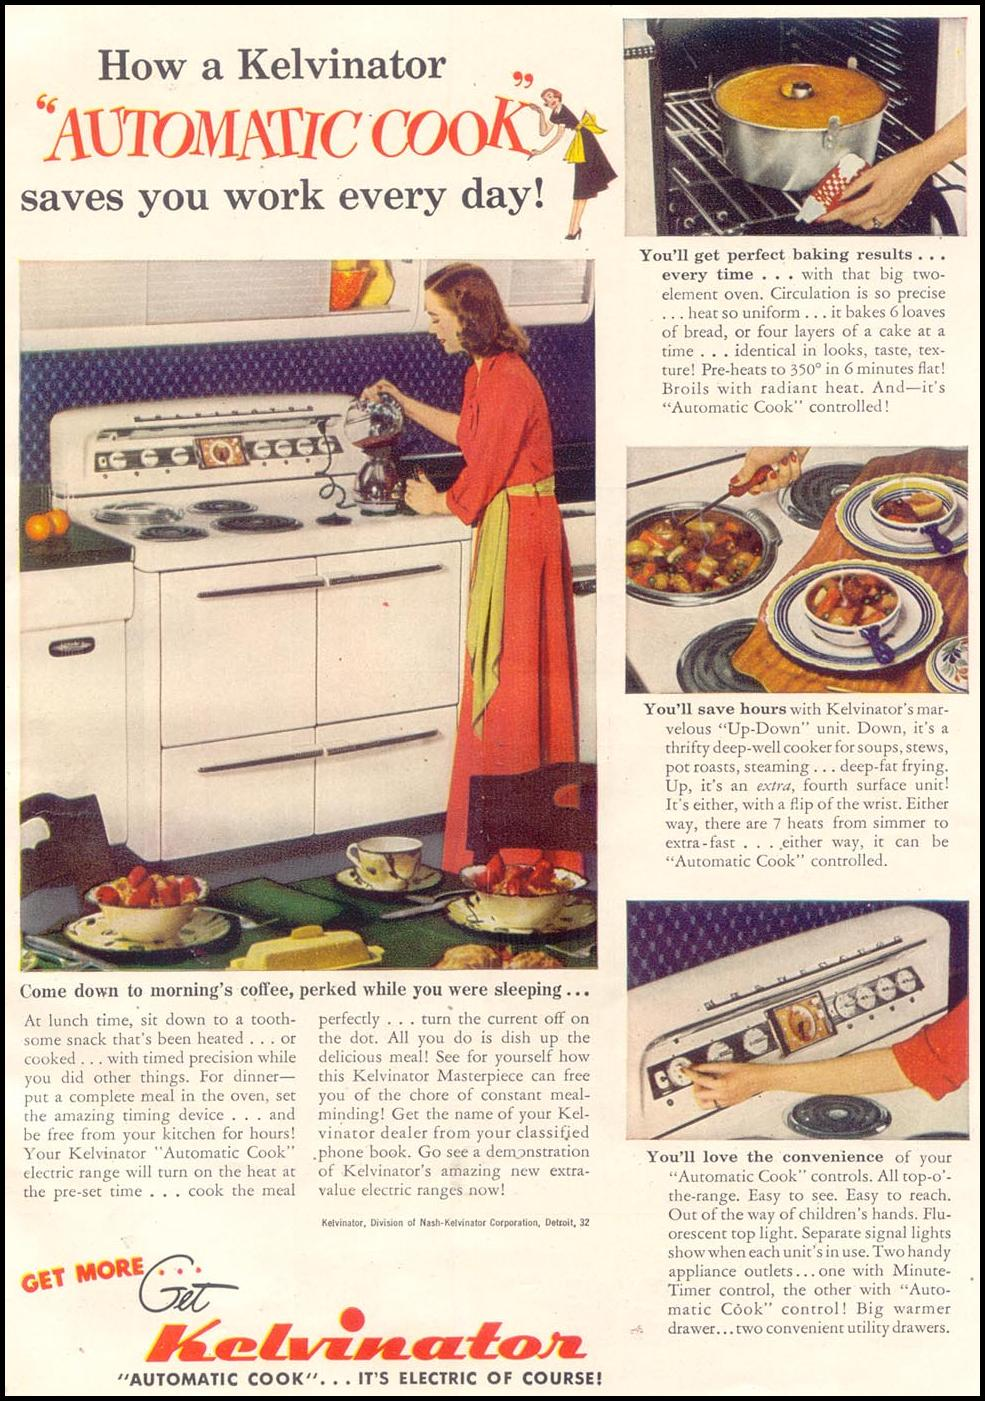 KELVINATOR AUTOMATIC COOK RANGE GOOD HOUSEKEEPING 07/01/1949